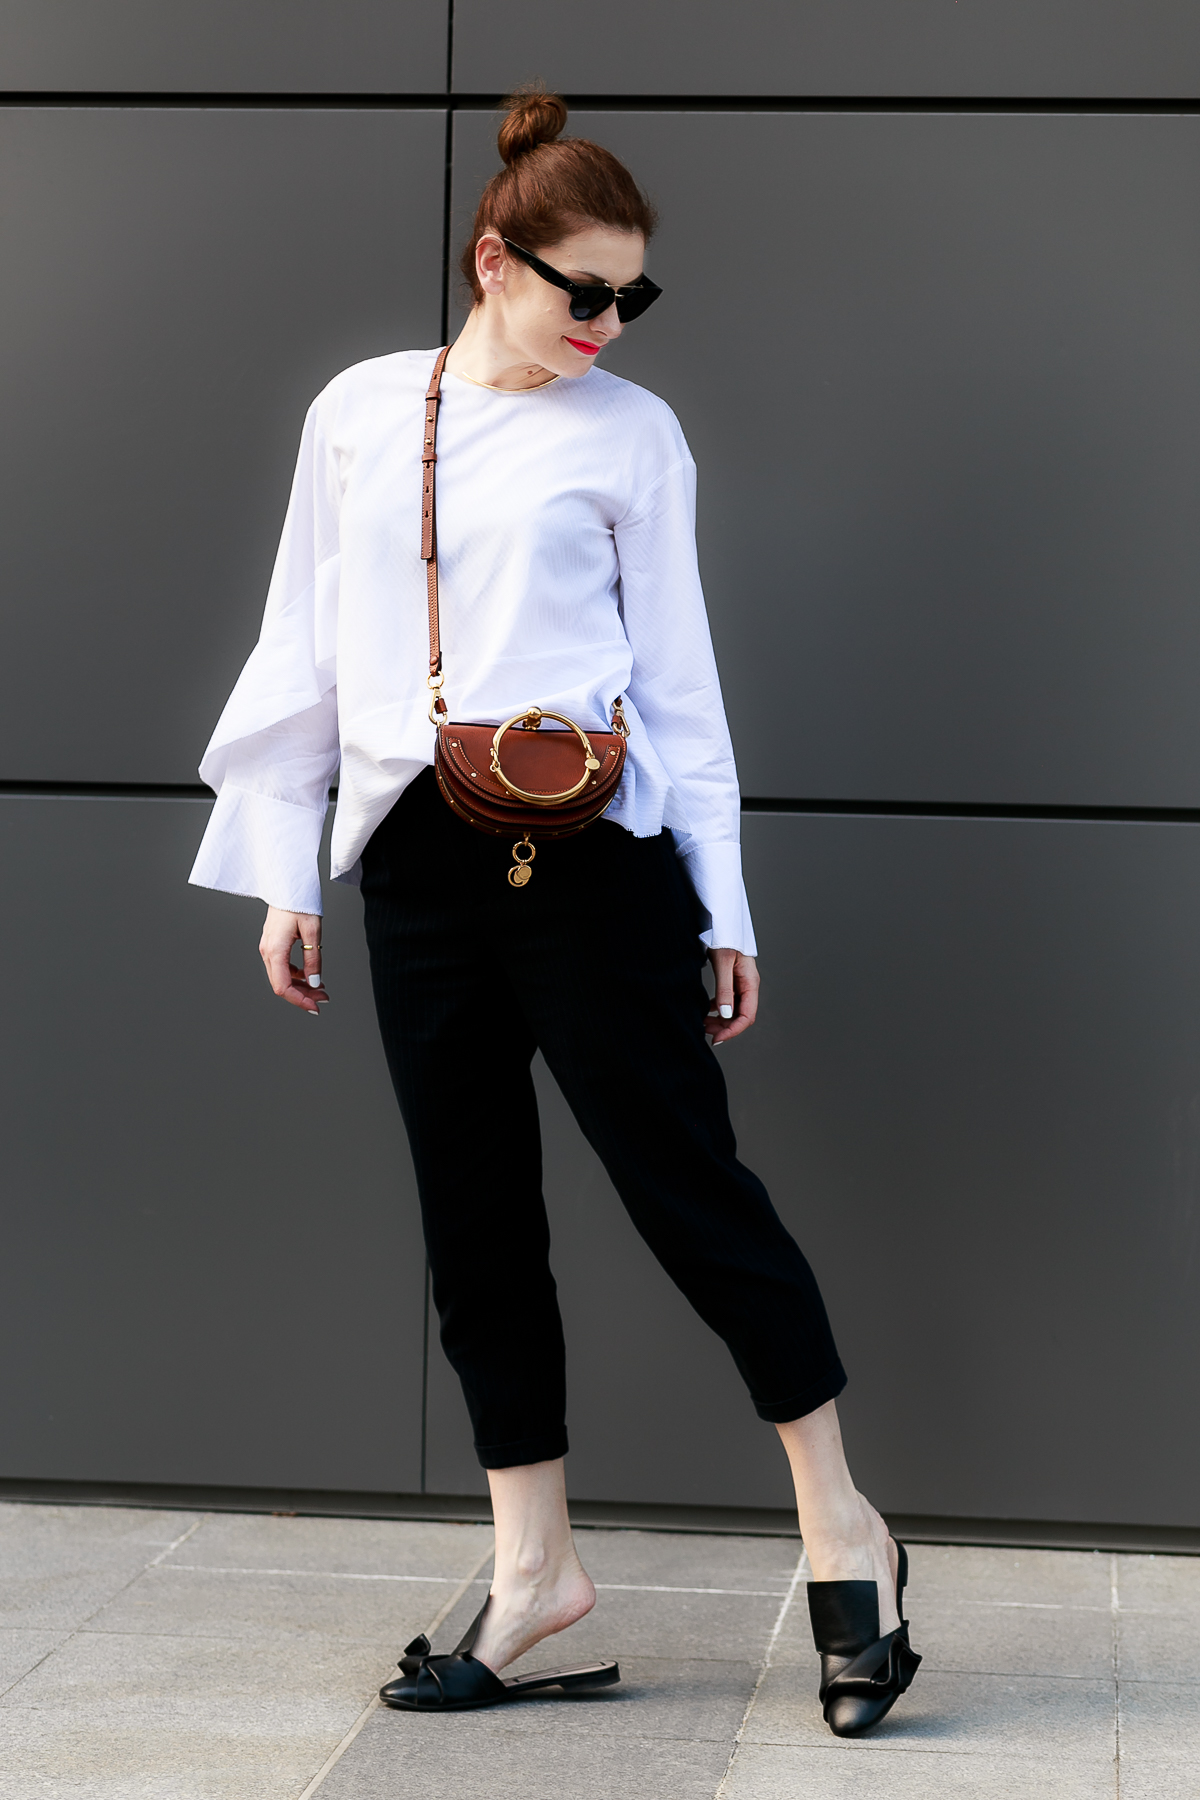 Chloe Girl Look Street Style Outfit | EdgyCuts